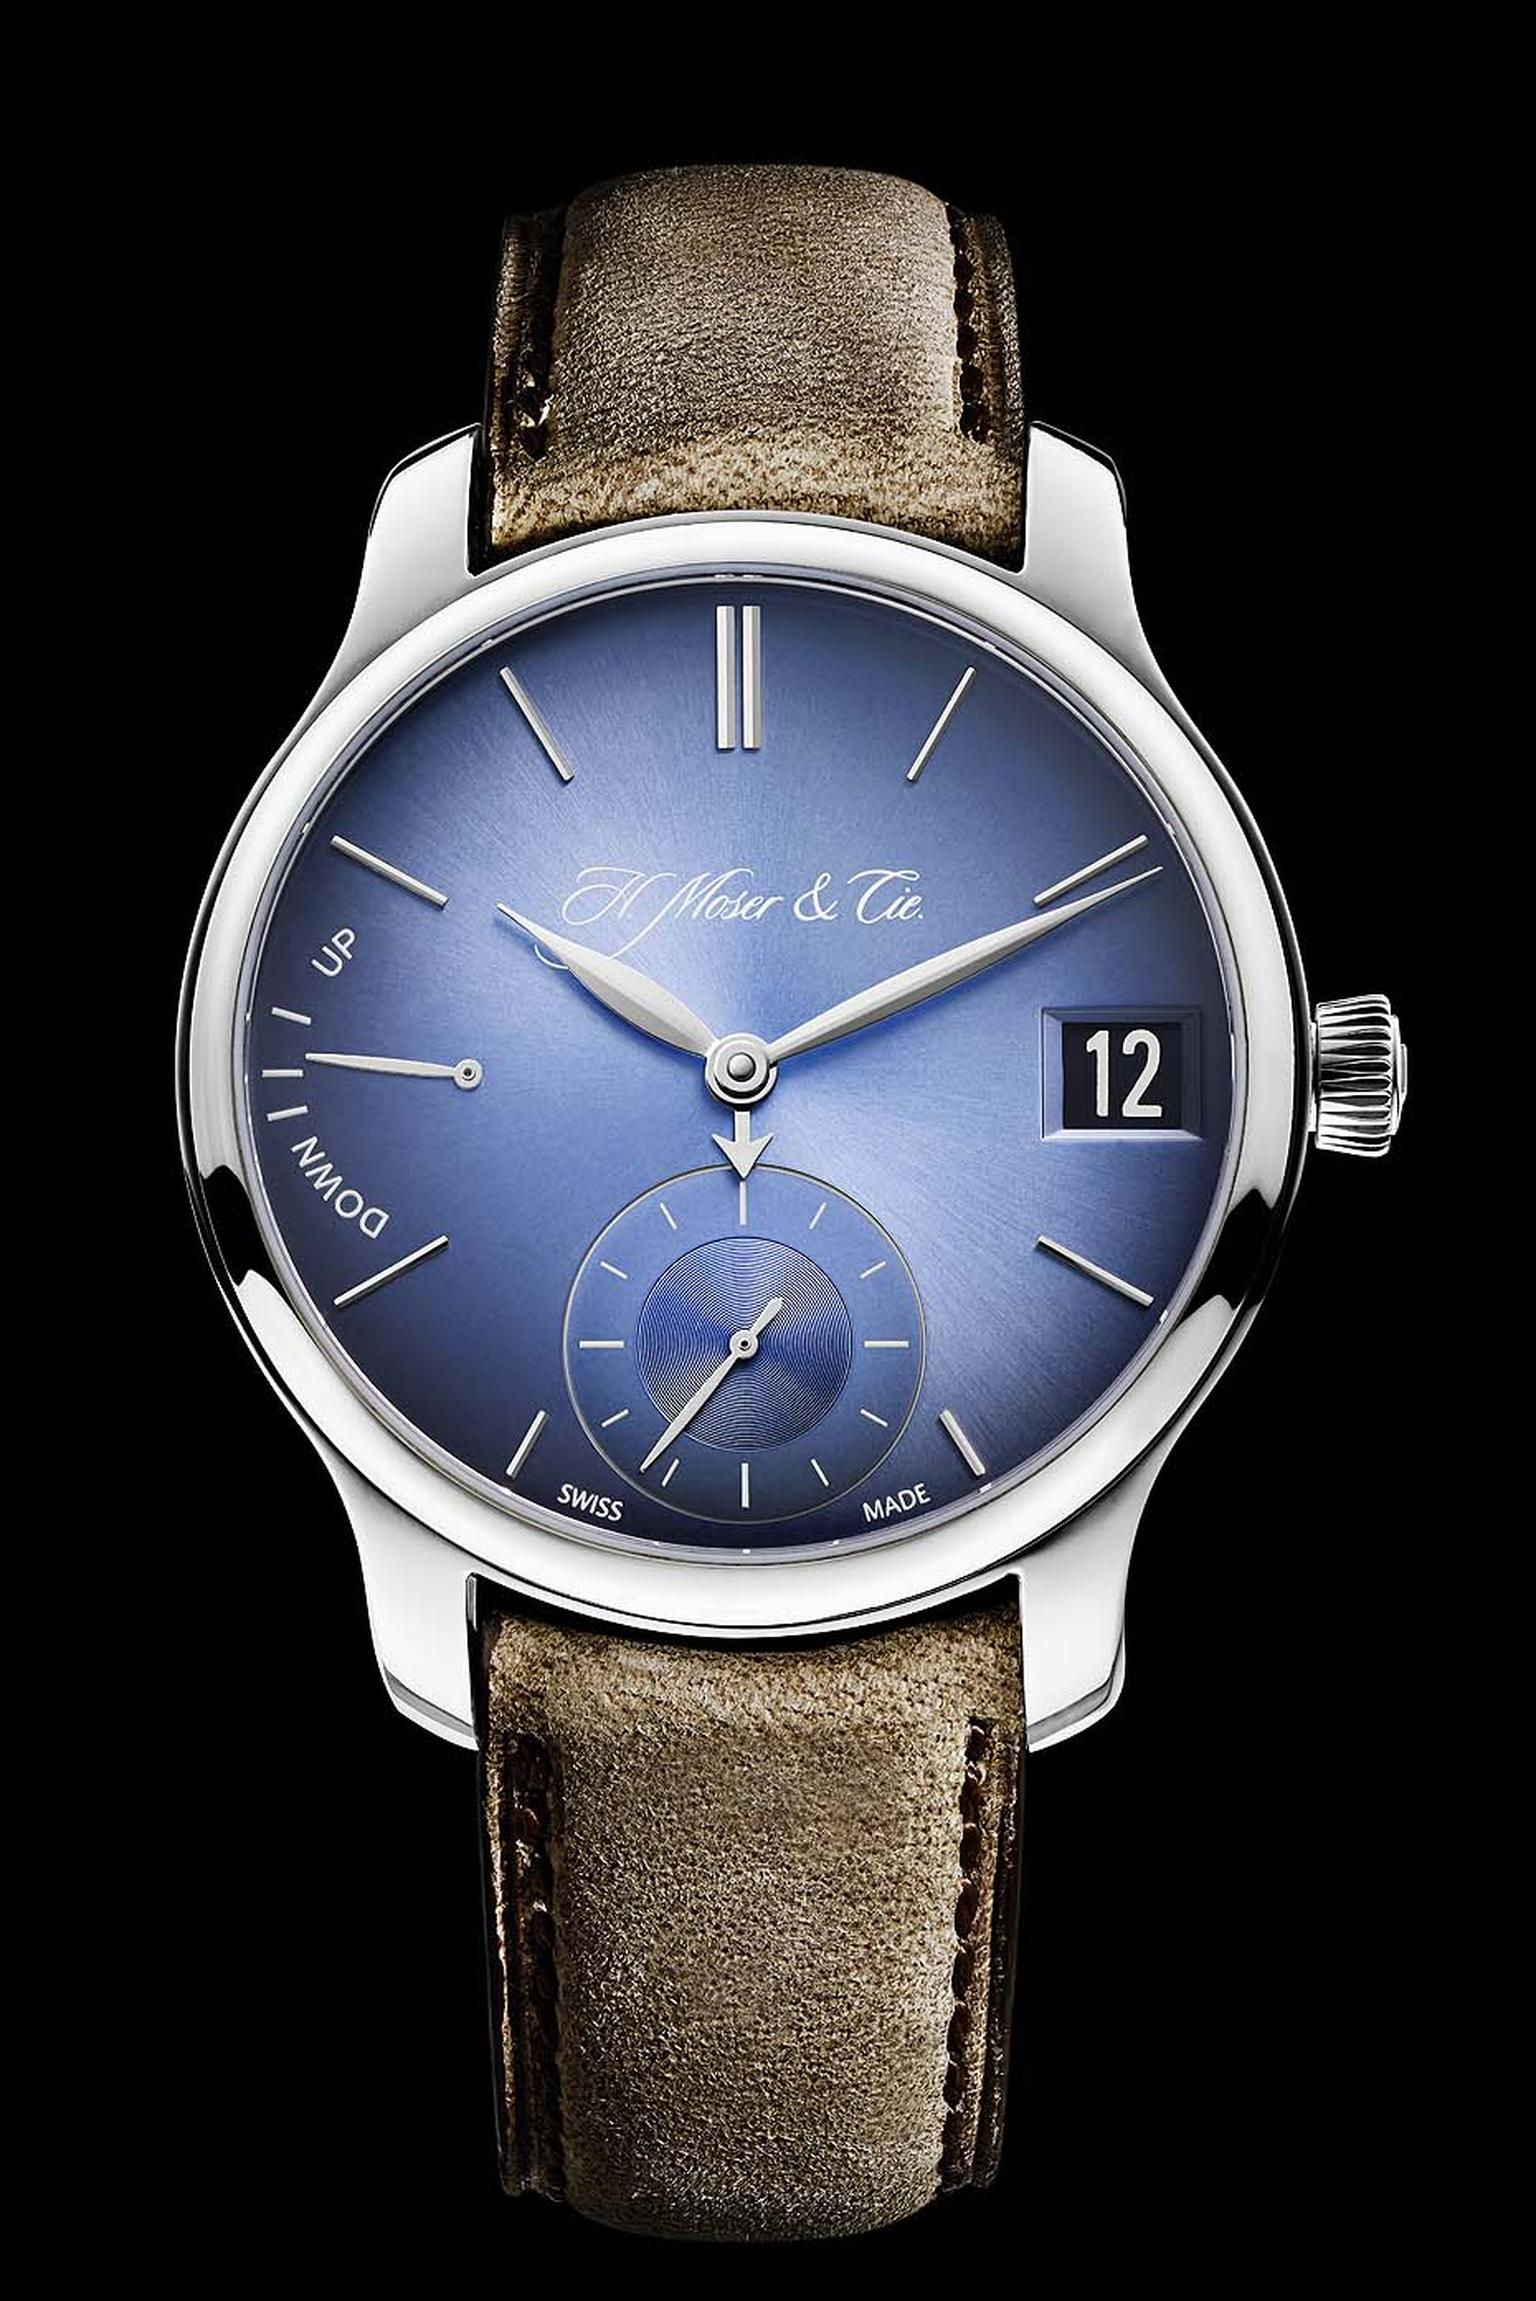 H. Moser & Cie. watches has given its highly complicated Perpetual Calendar a contemporary edge with an electric blue fumé dial and distressed leather strap.